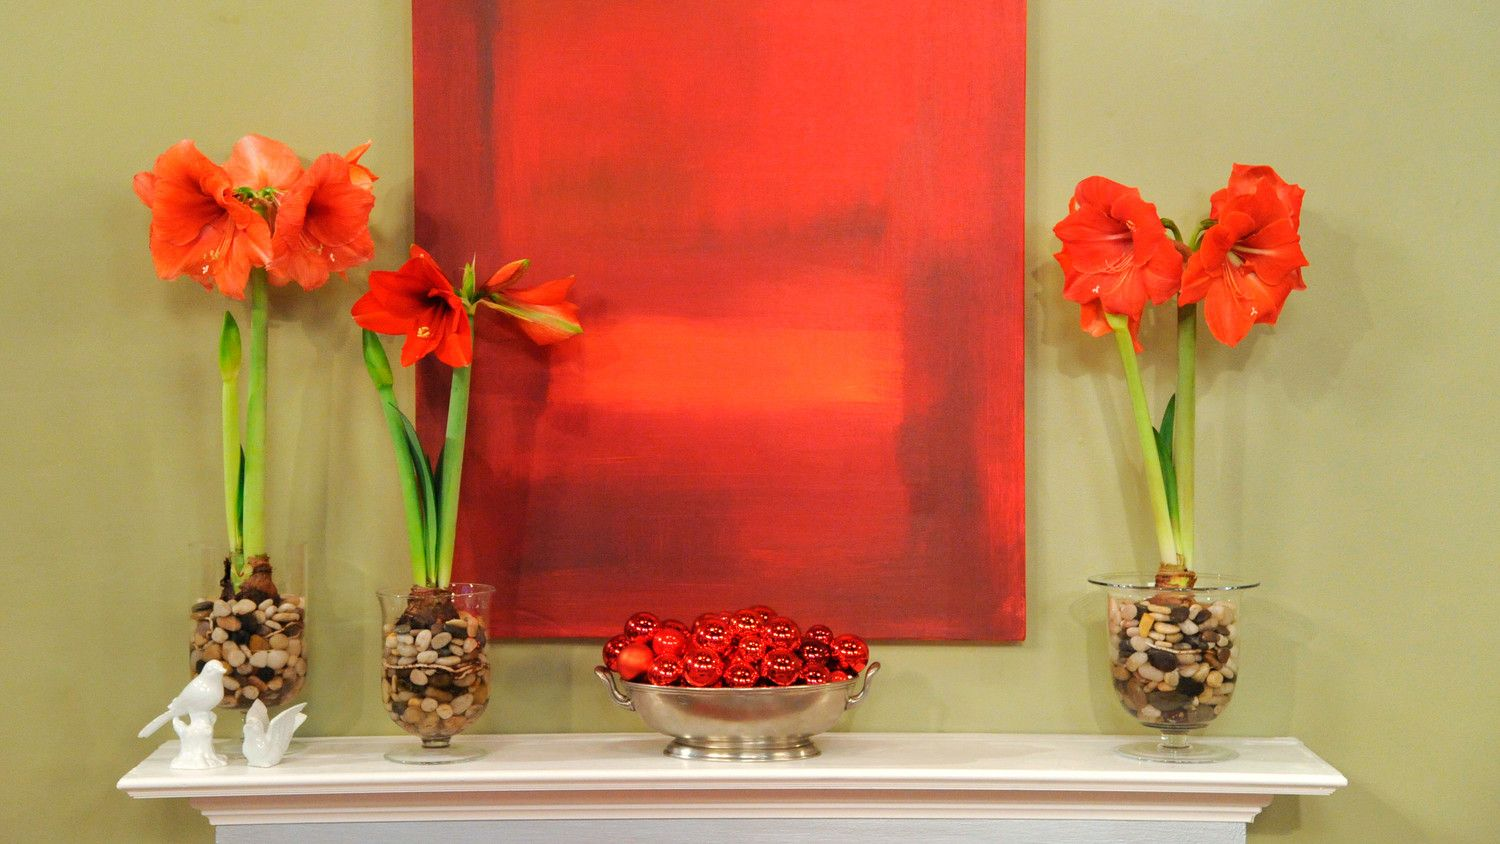 How to Plant and Care for Amaryllis Amaryllis bulbs